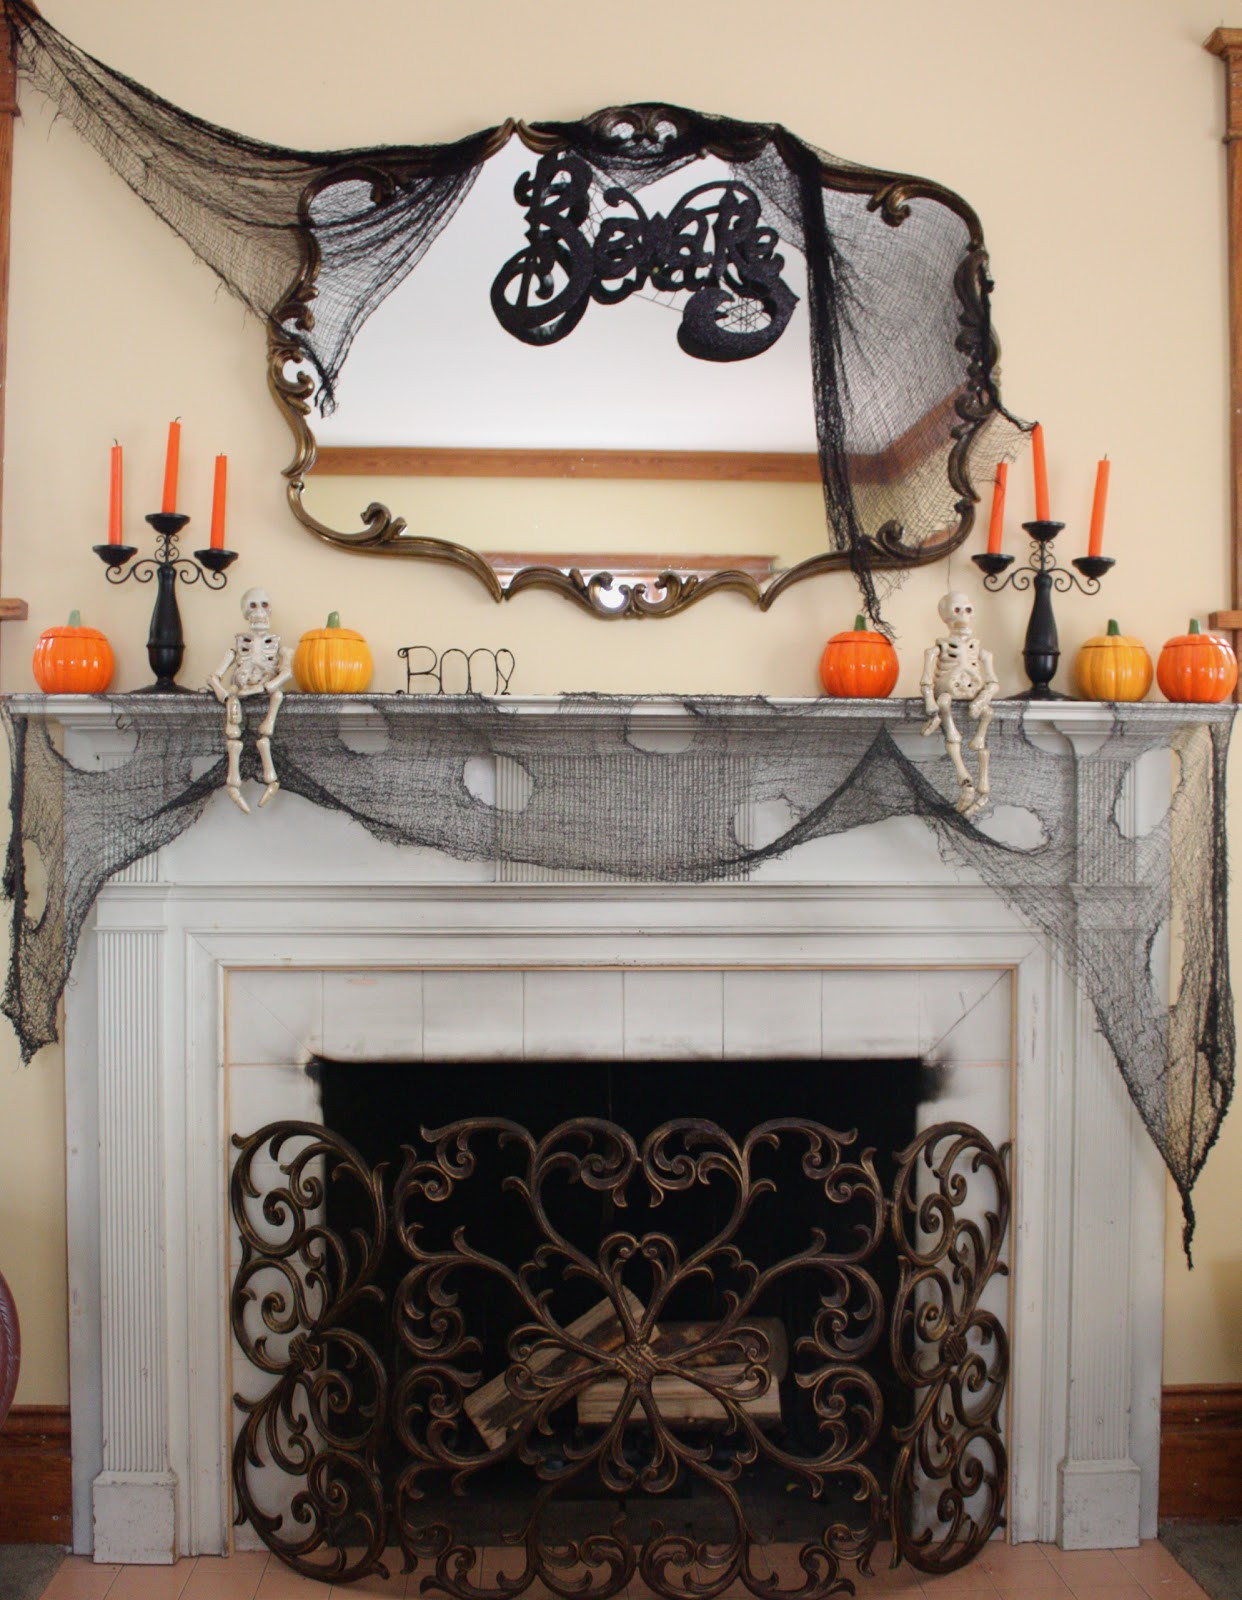 Halloween Fireplace Decorations  At Second Street Halloween mantel and other decorations